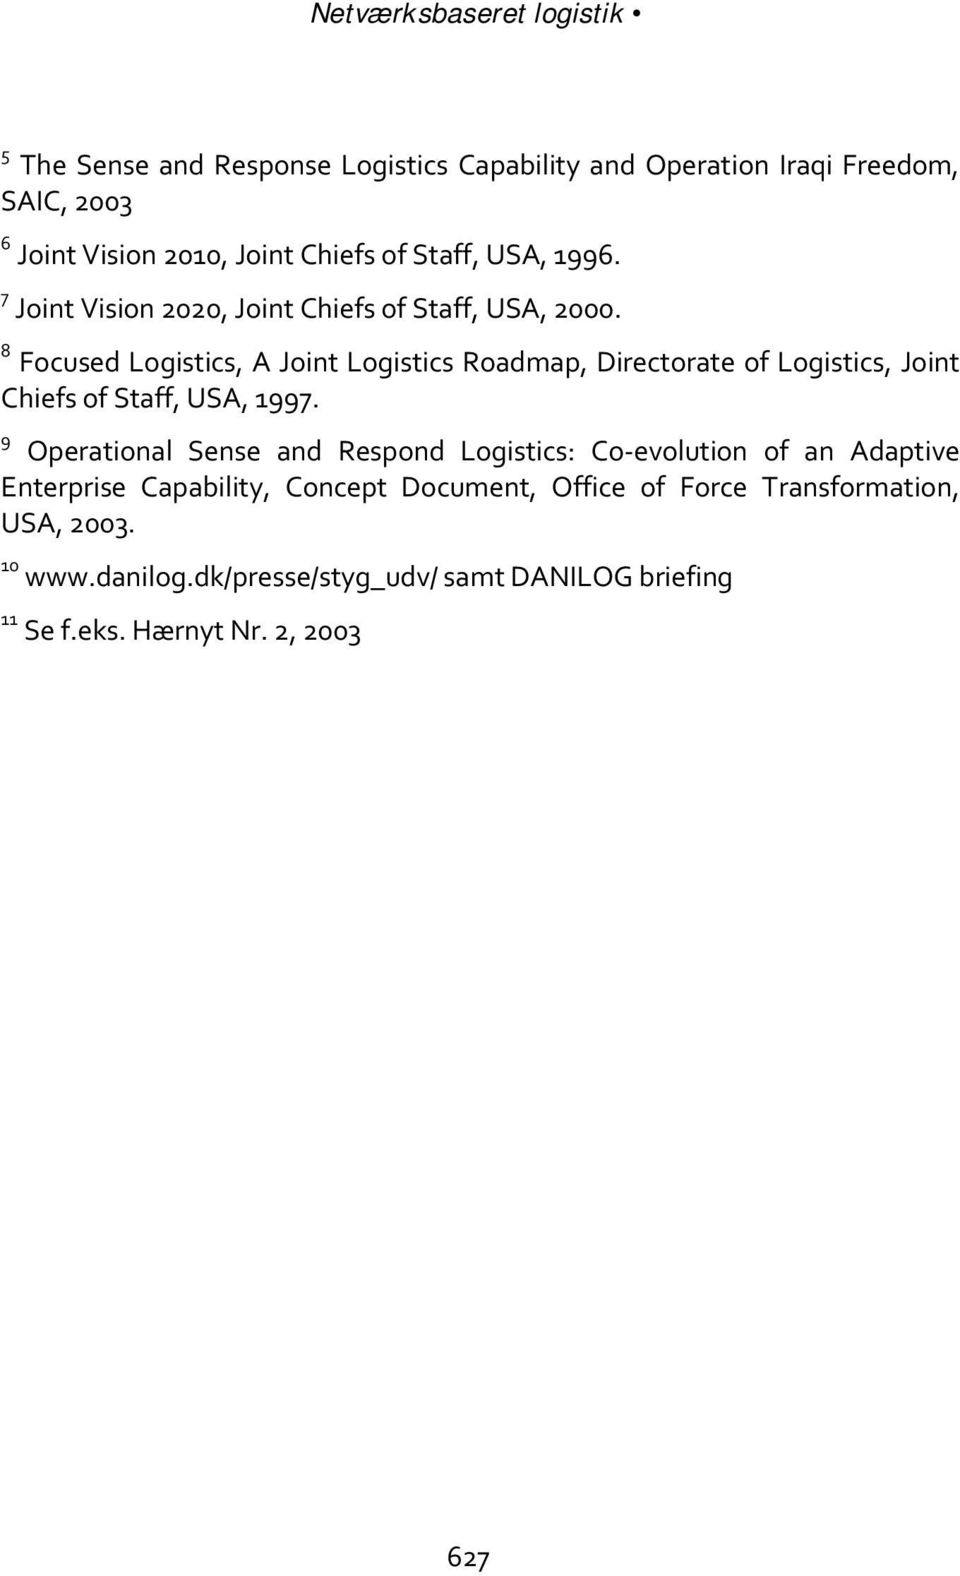 8 Focused Logistics, A Joint Logistics Roadmap, Directorate of Logistics, Joint Chiefs of Staff, USA, 1997.